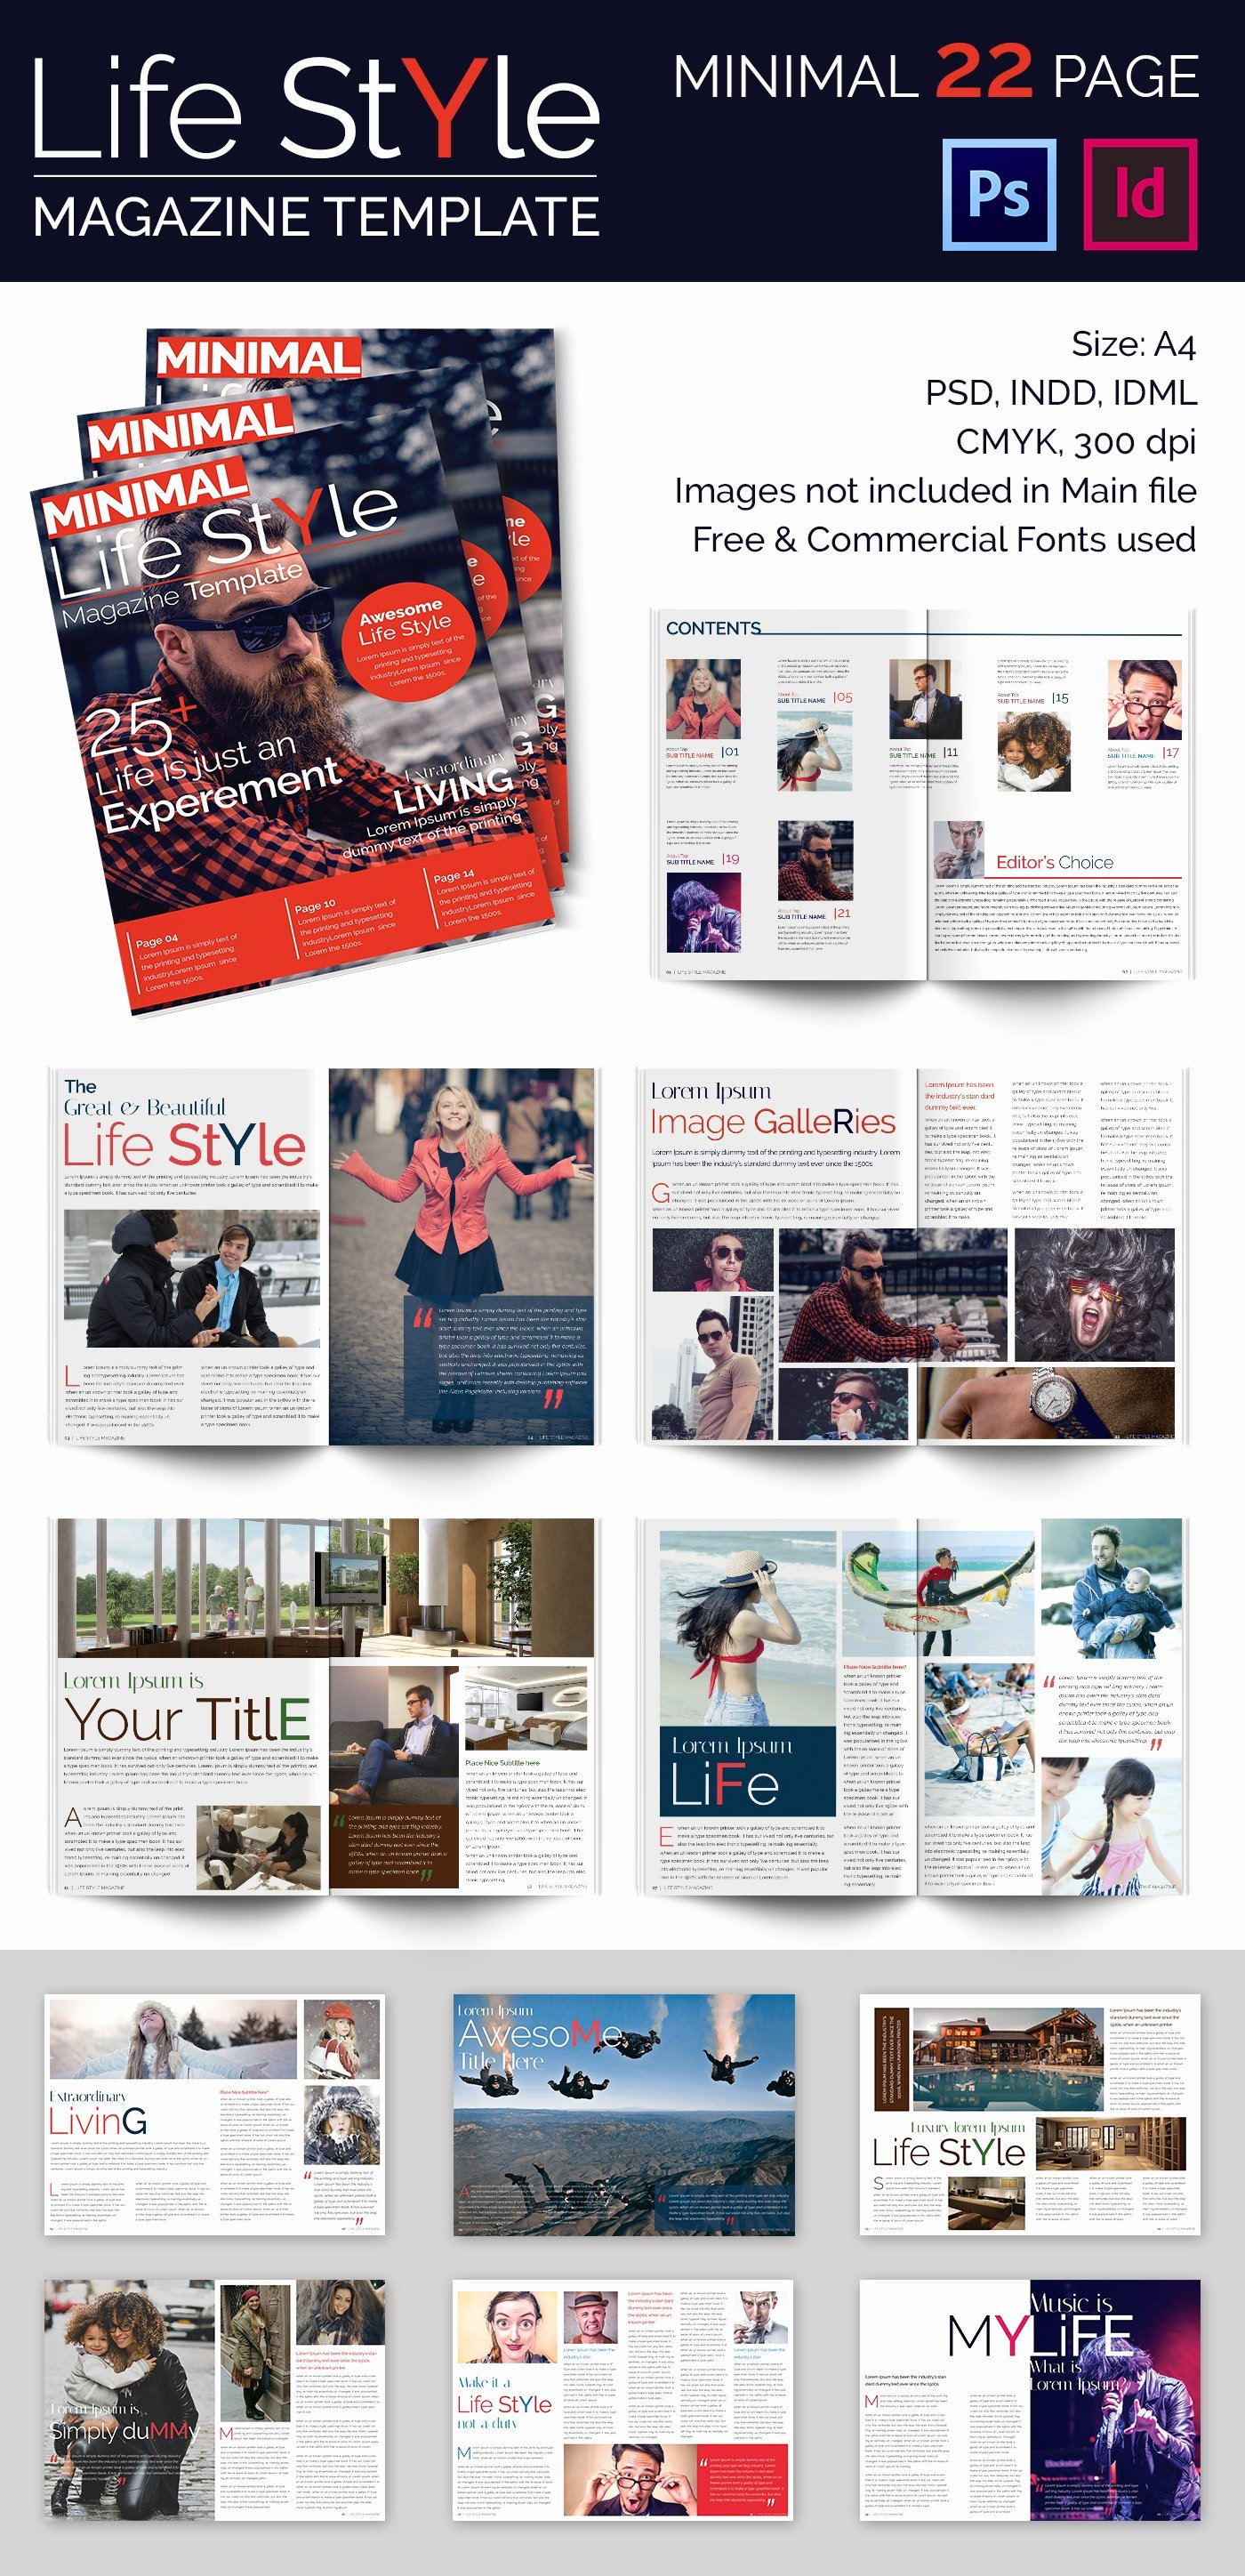 Magazine Template for Microsoft Word Unique 55 Brand New Magazine Templates Free Word Psd Eps Ai